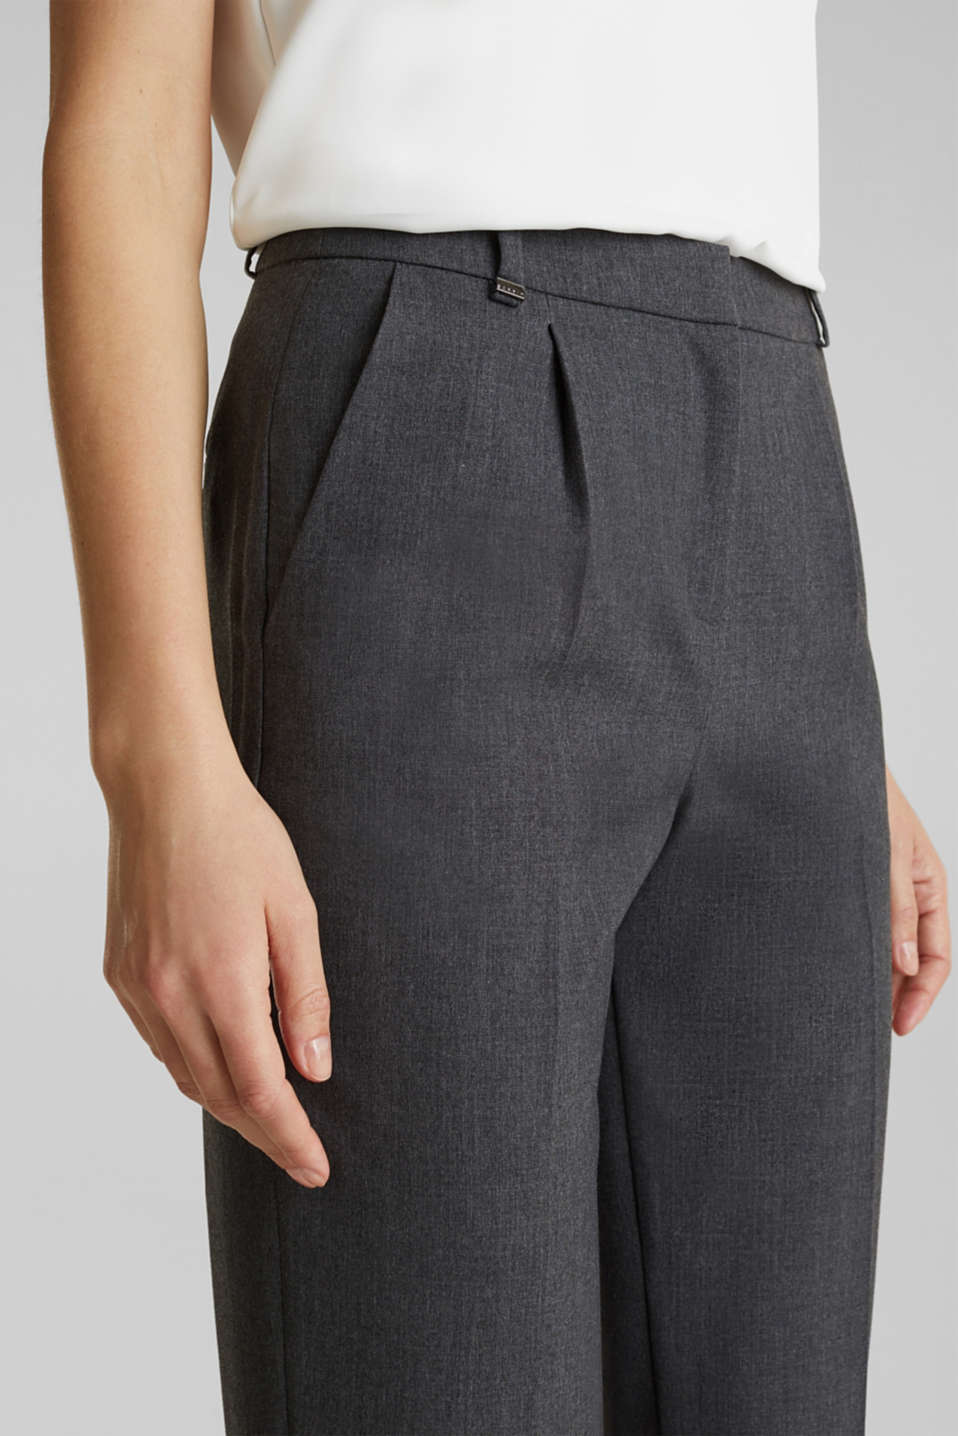 PURE BUSINESS stretch trousers with waist pleats, MEDIUM GREY 5, detail image number 2